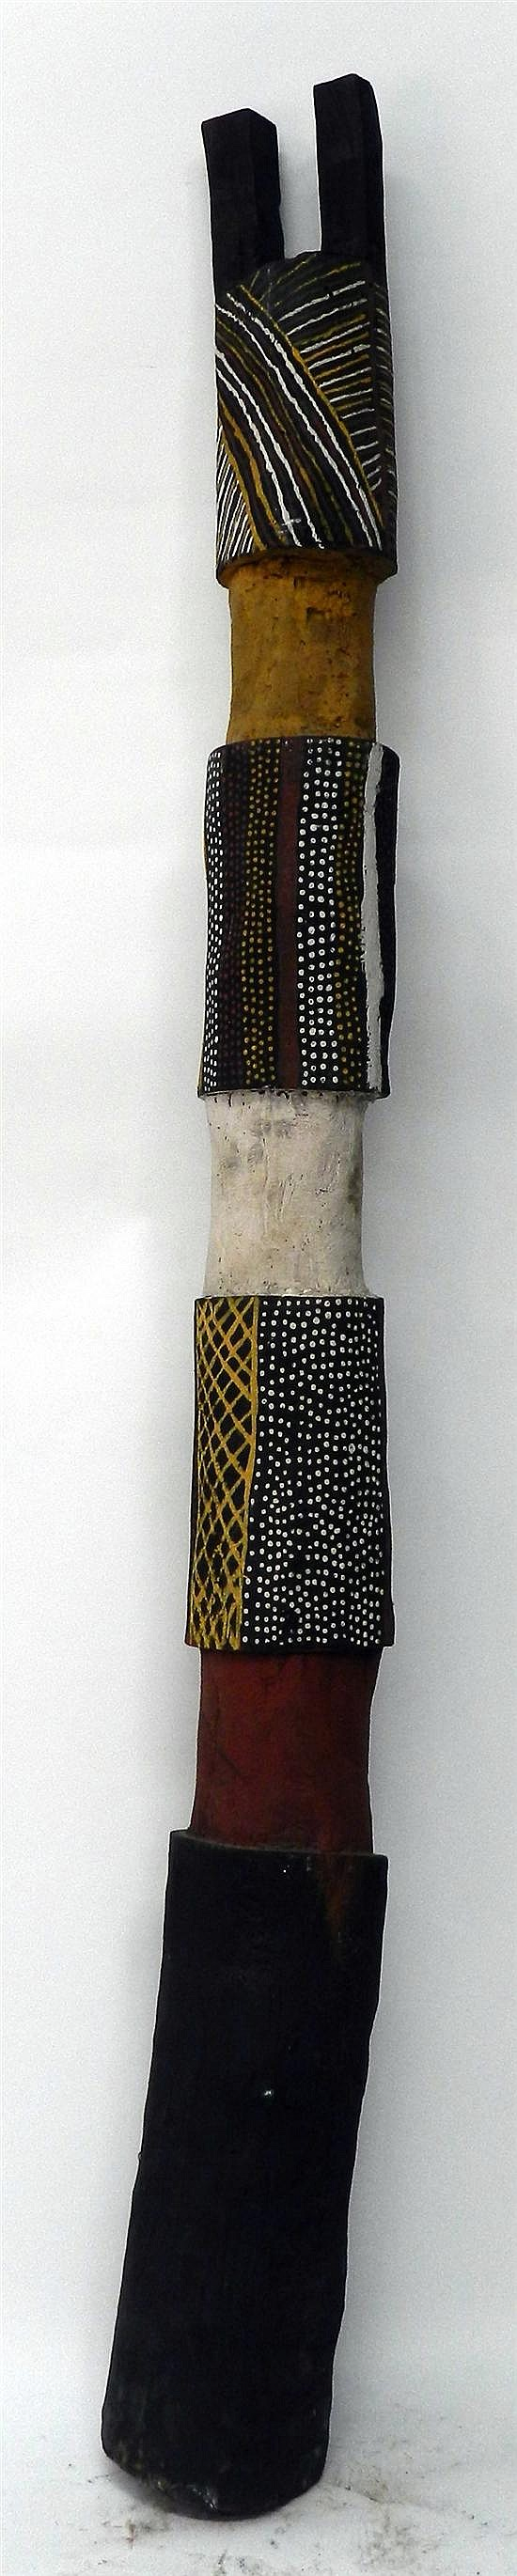 Artist Unknown Tiwi Islands Forked Pukami Pole 1989 Earth pigments on Ironwood